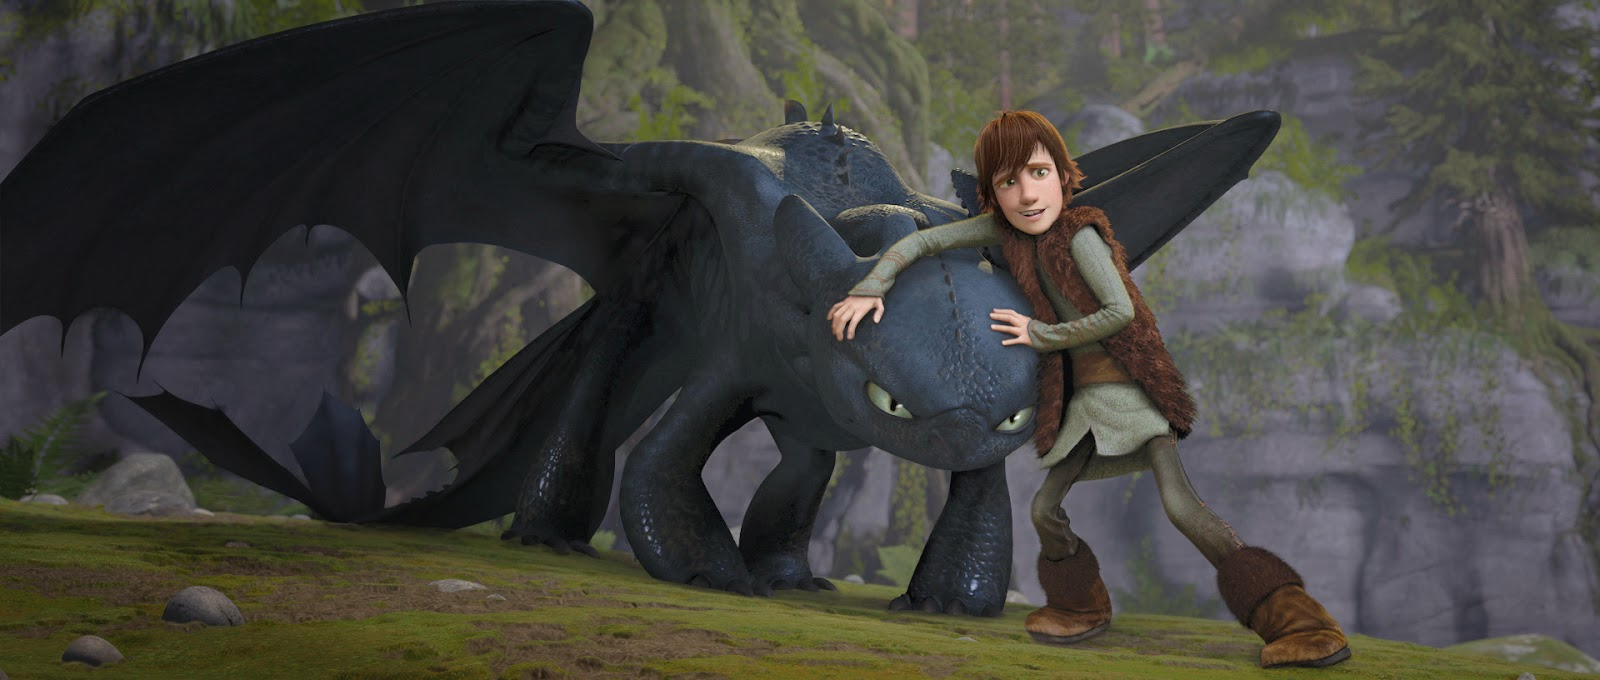 review how to train your dragon